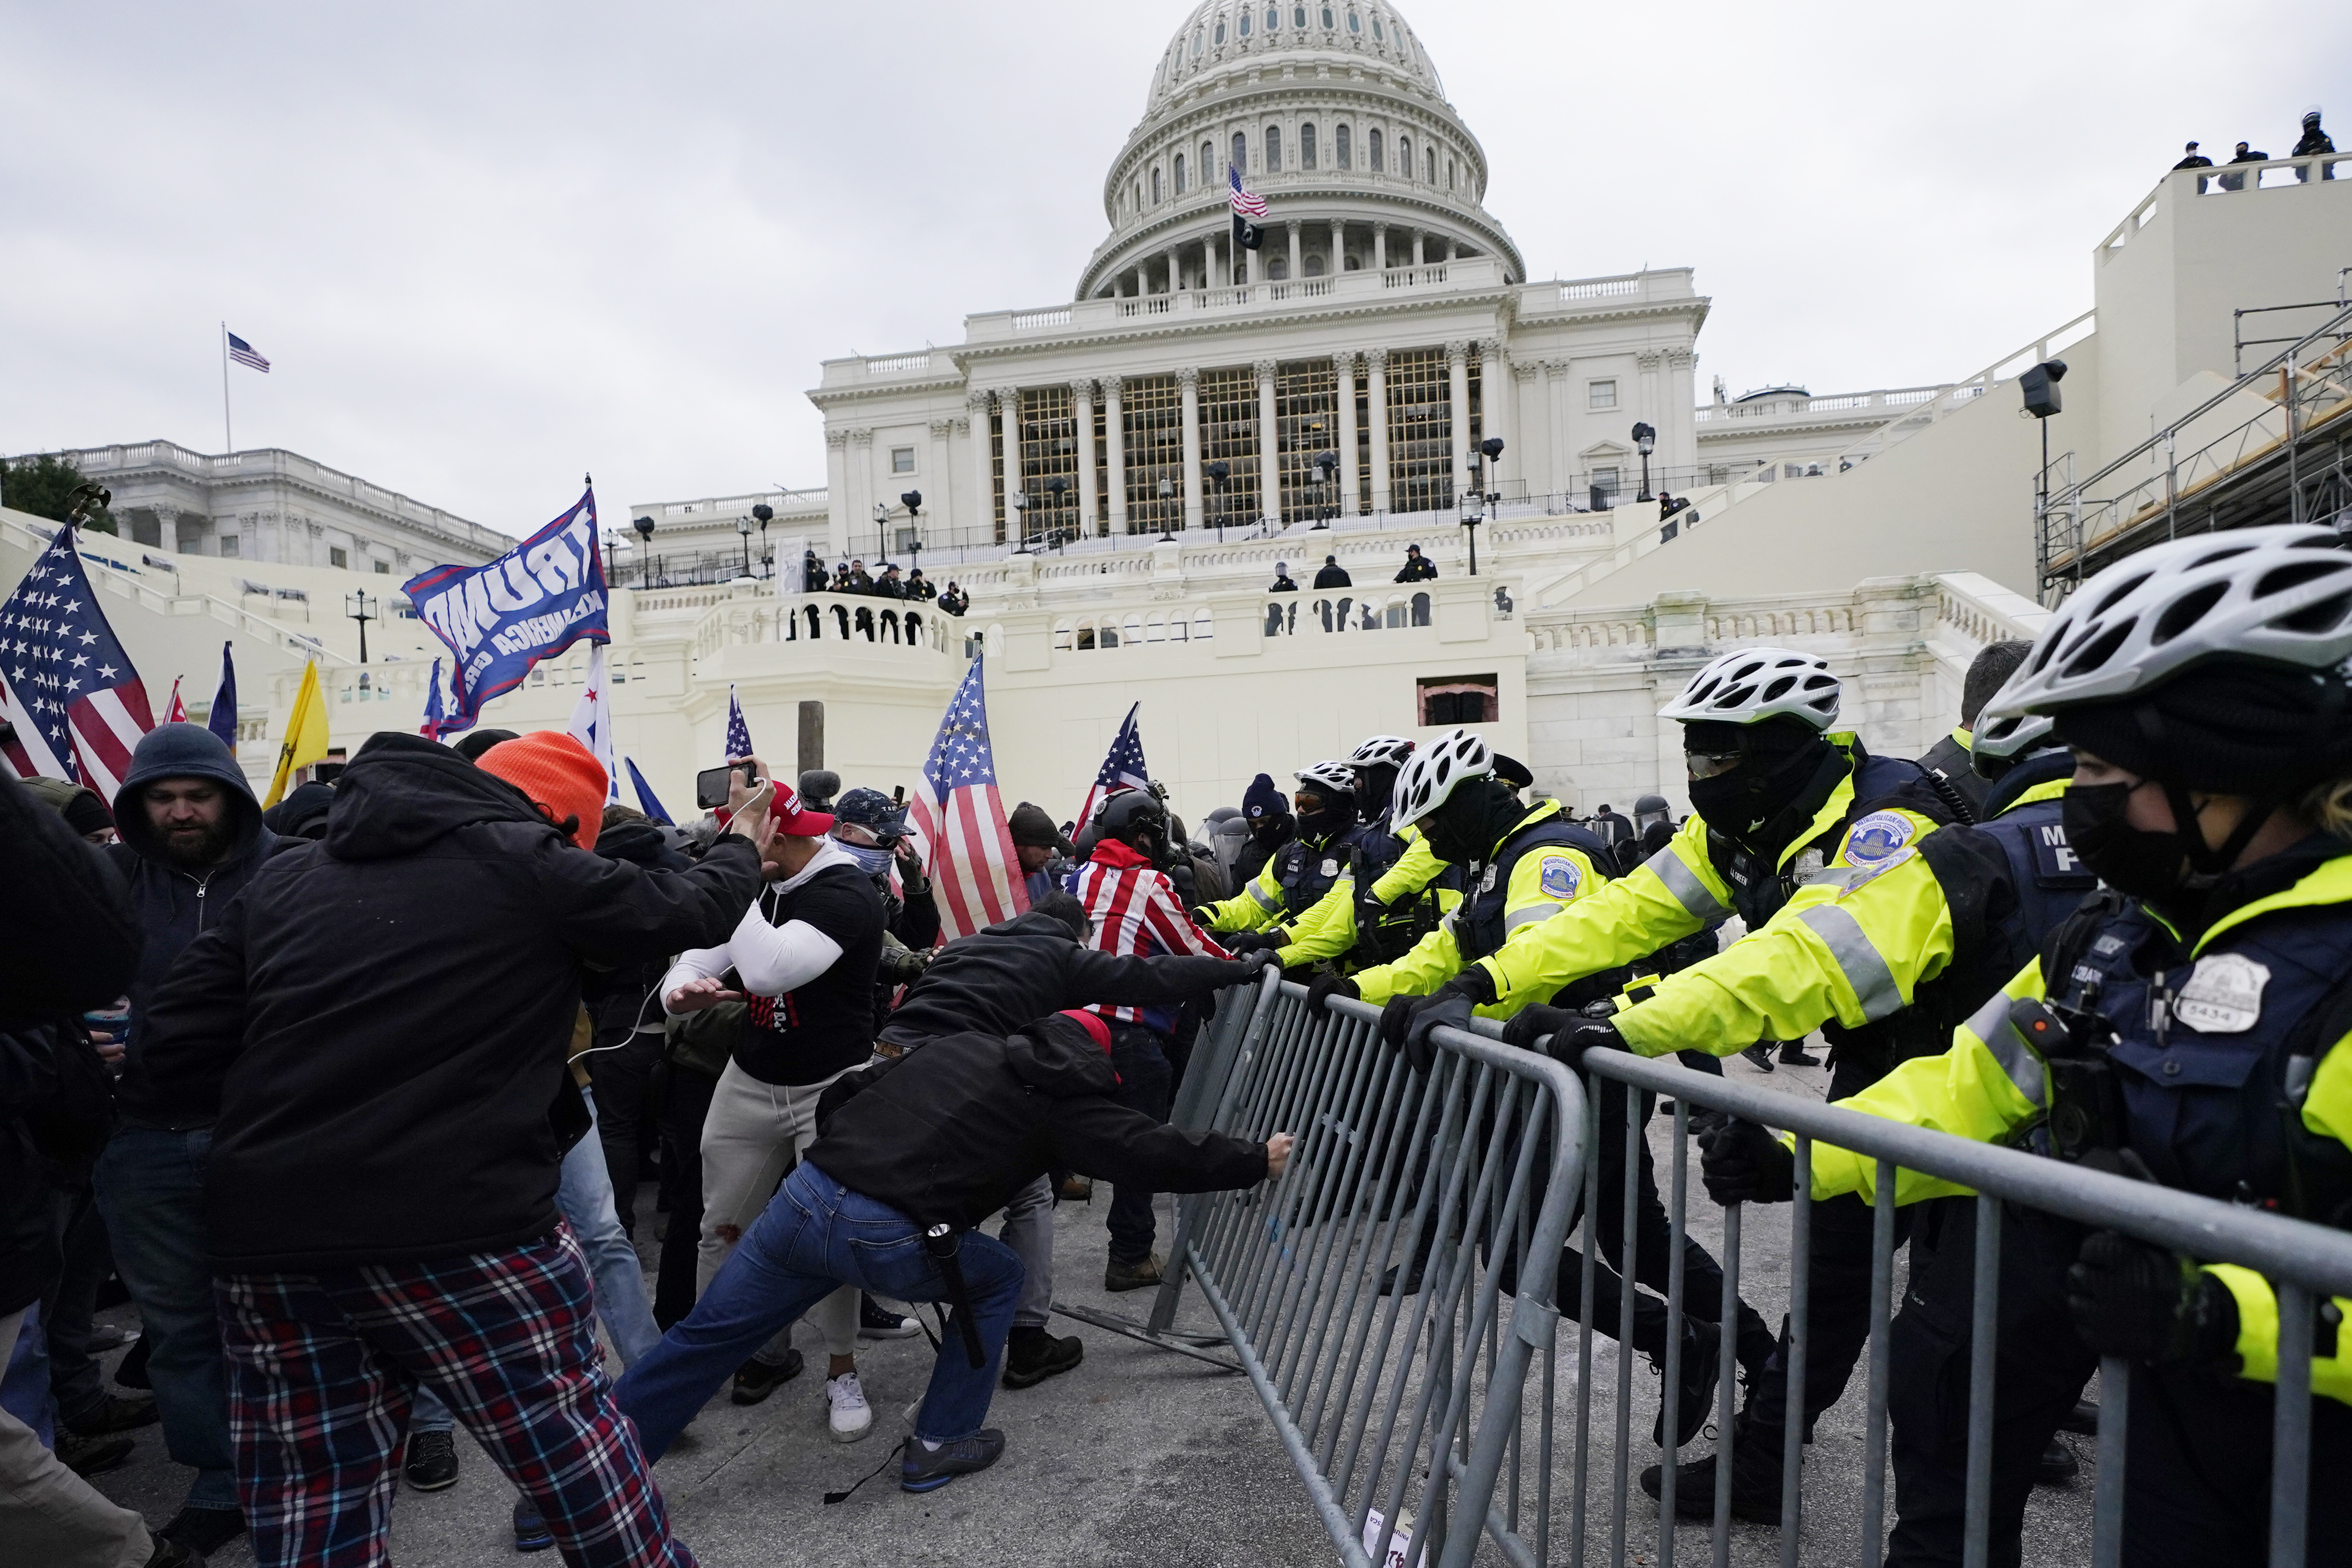 Trump supporters try to break through a police barrier, on Jan. 6, 2021, at the Capitol in Washington.